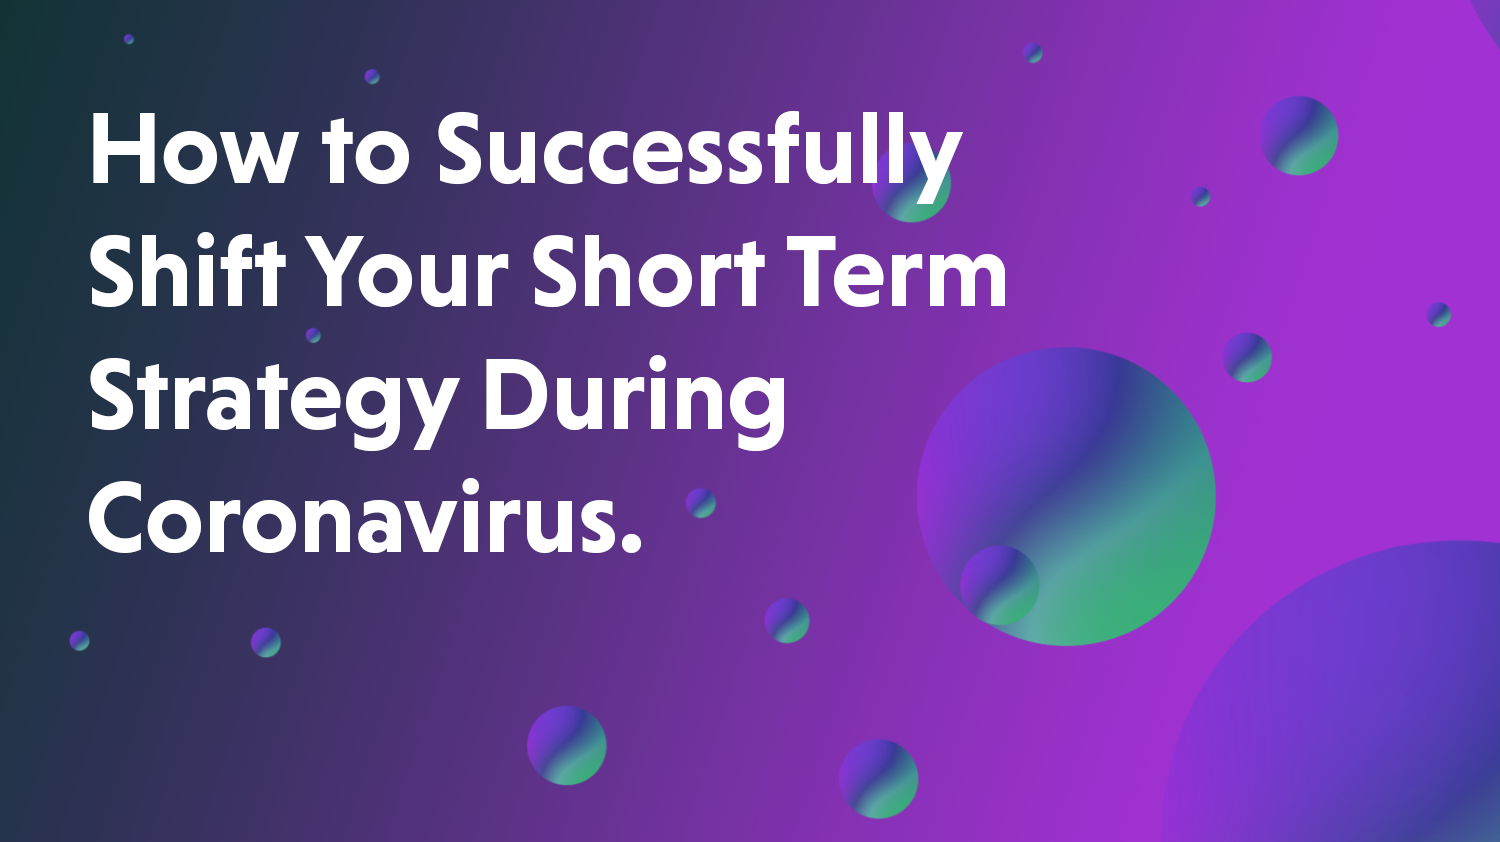 How to Successfully Shift Your Short Term Strategy During Coronavirus